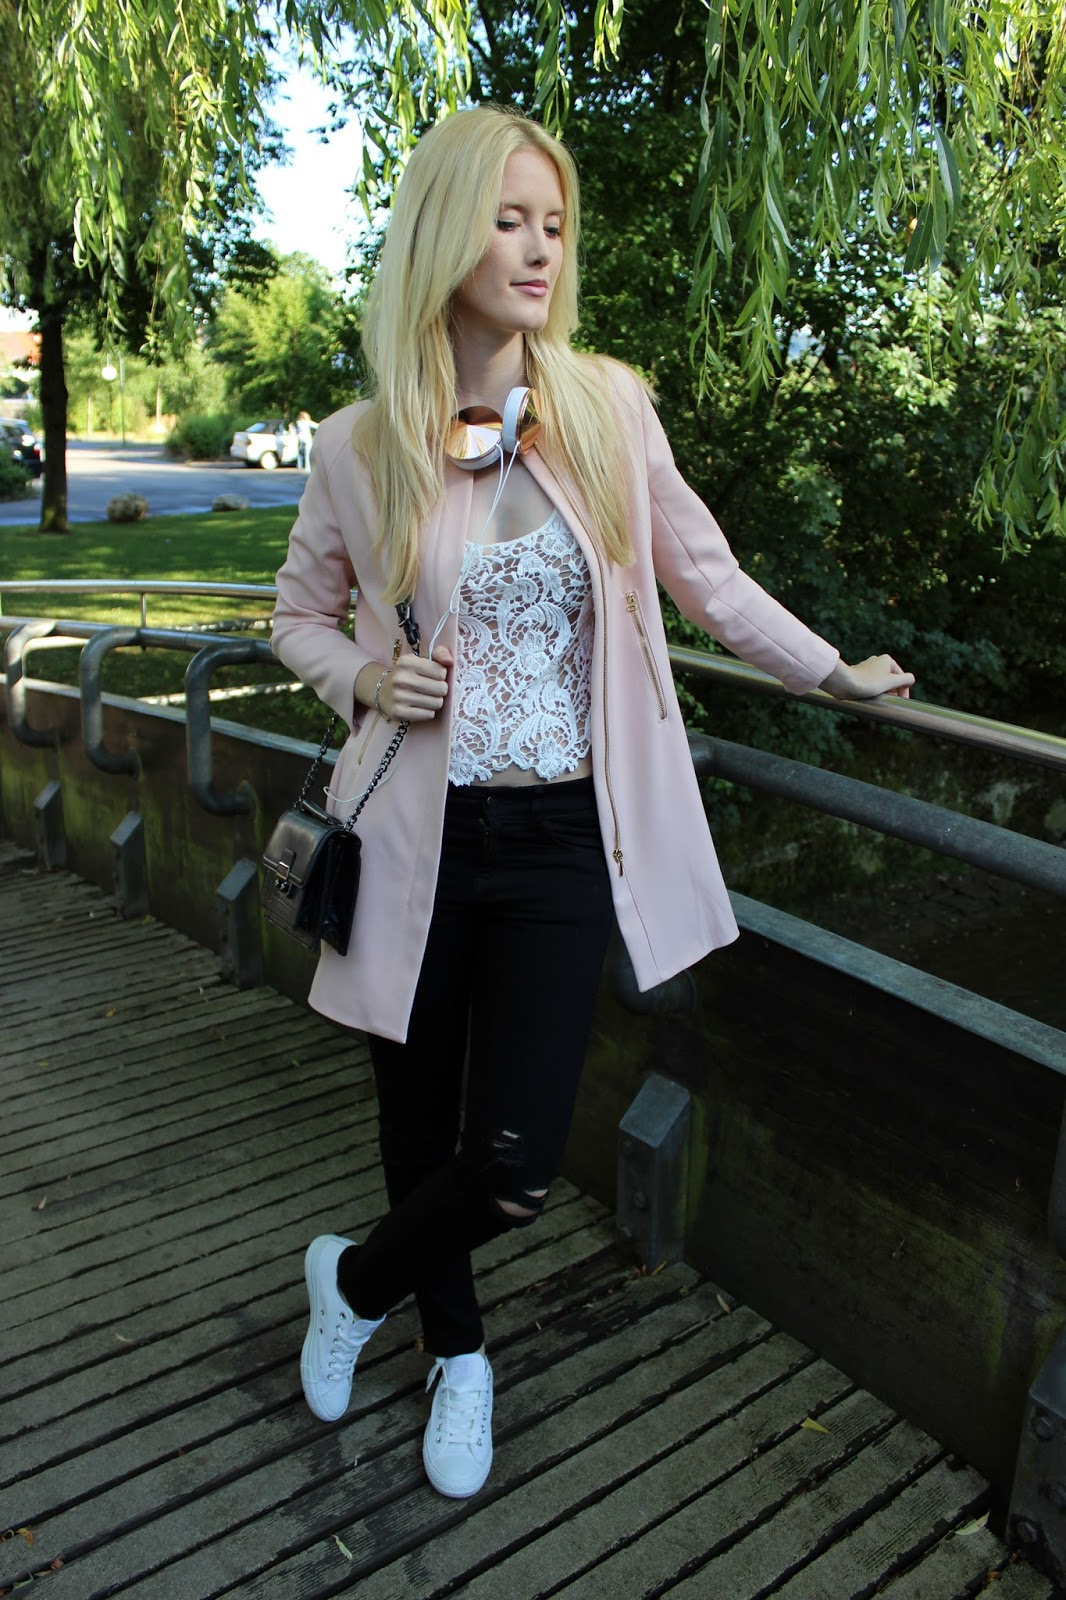 TheBlondeLion outfit Rose lace ripped jeans frends headphones